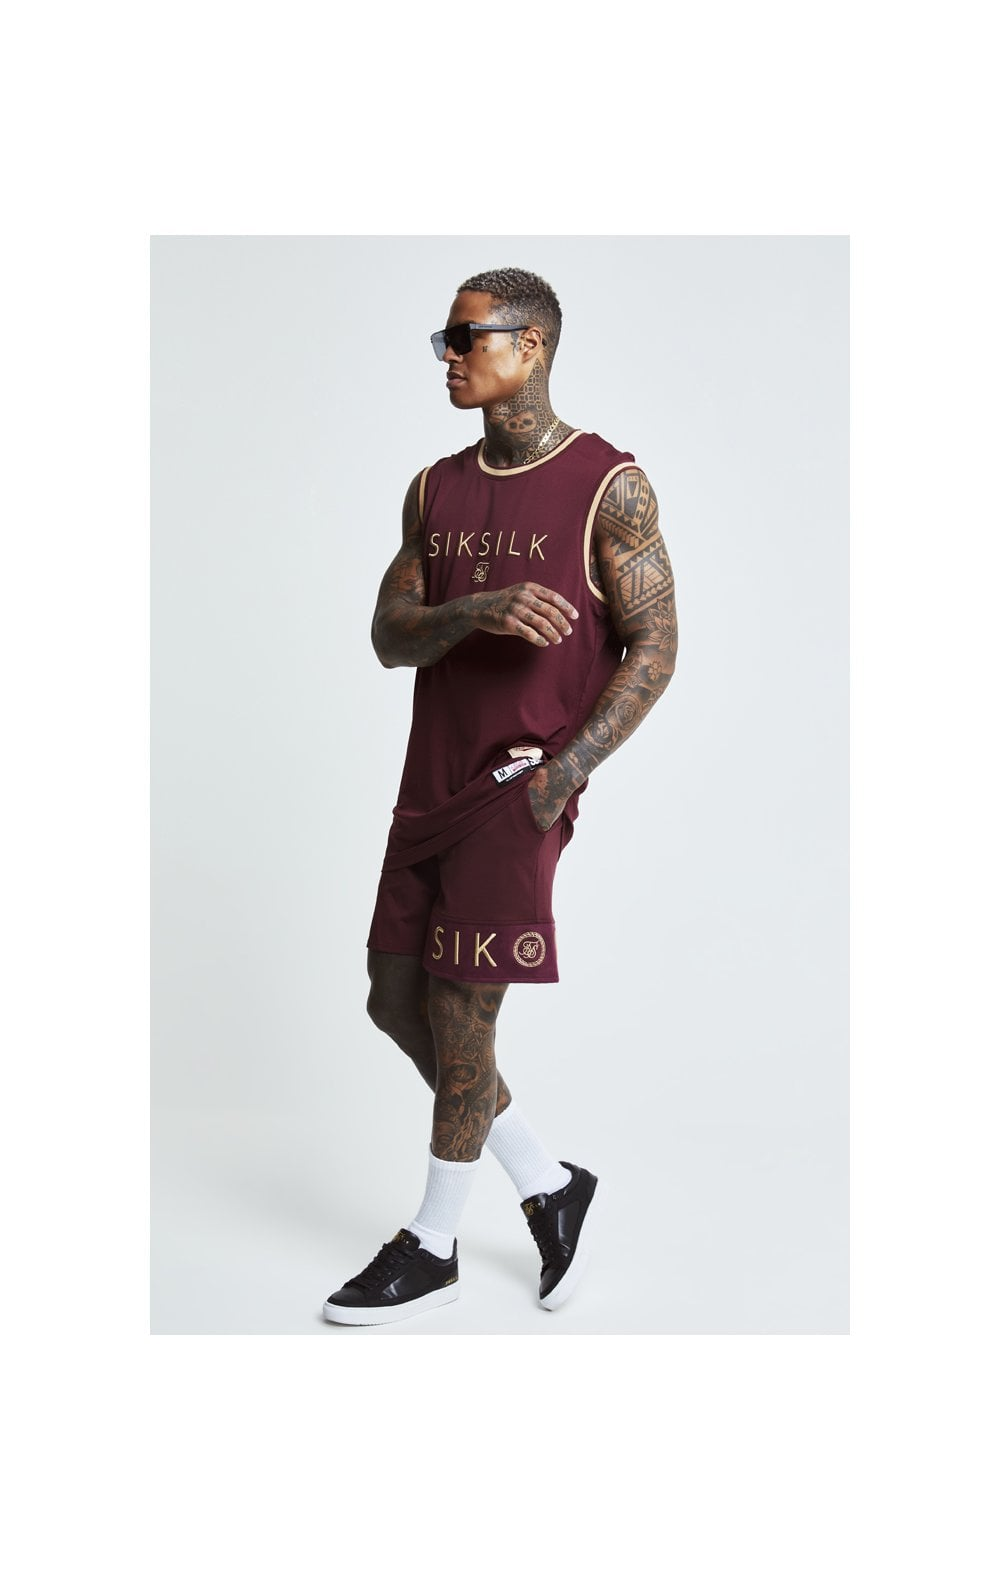 Load image into Gallery viewer, SikSilk Signature Eyelet Basketball Vest - Burgundy & Gold (2)